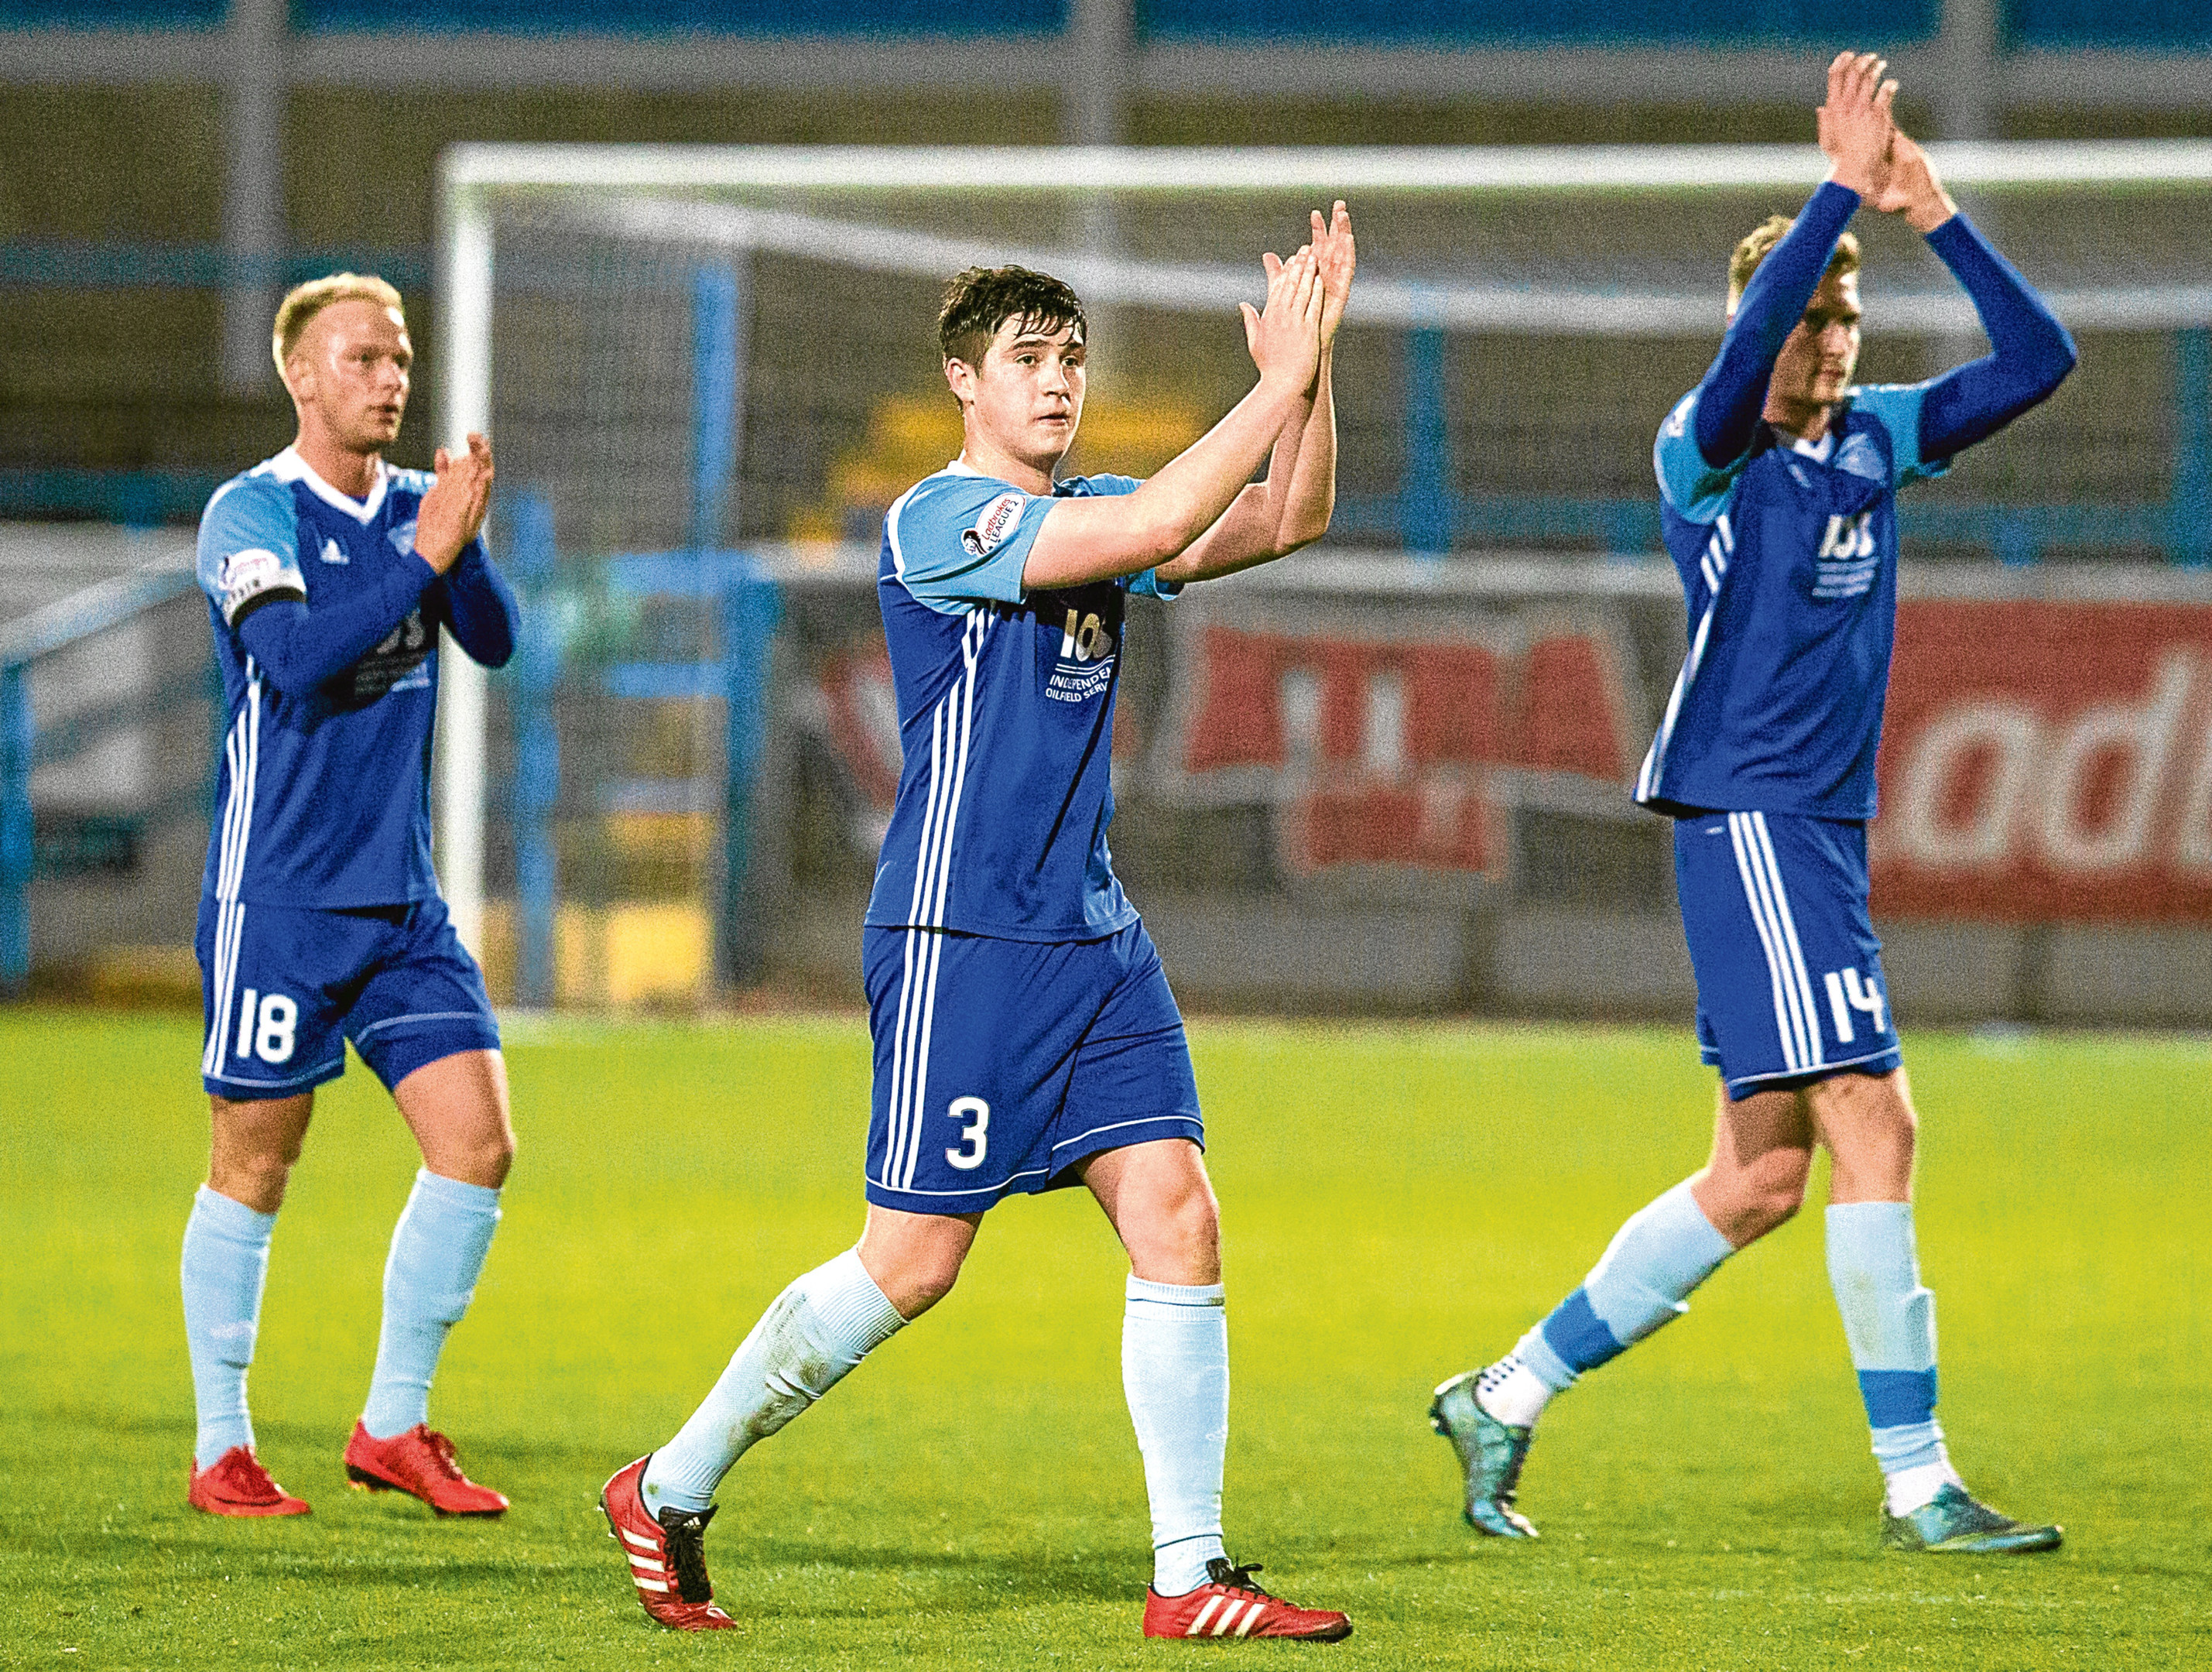 Peterhead's Mason Robertson, middle, celebrates at full-time.